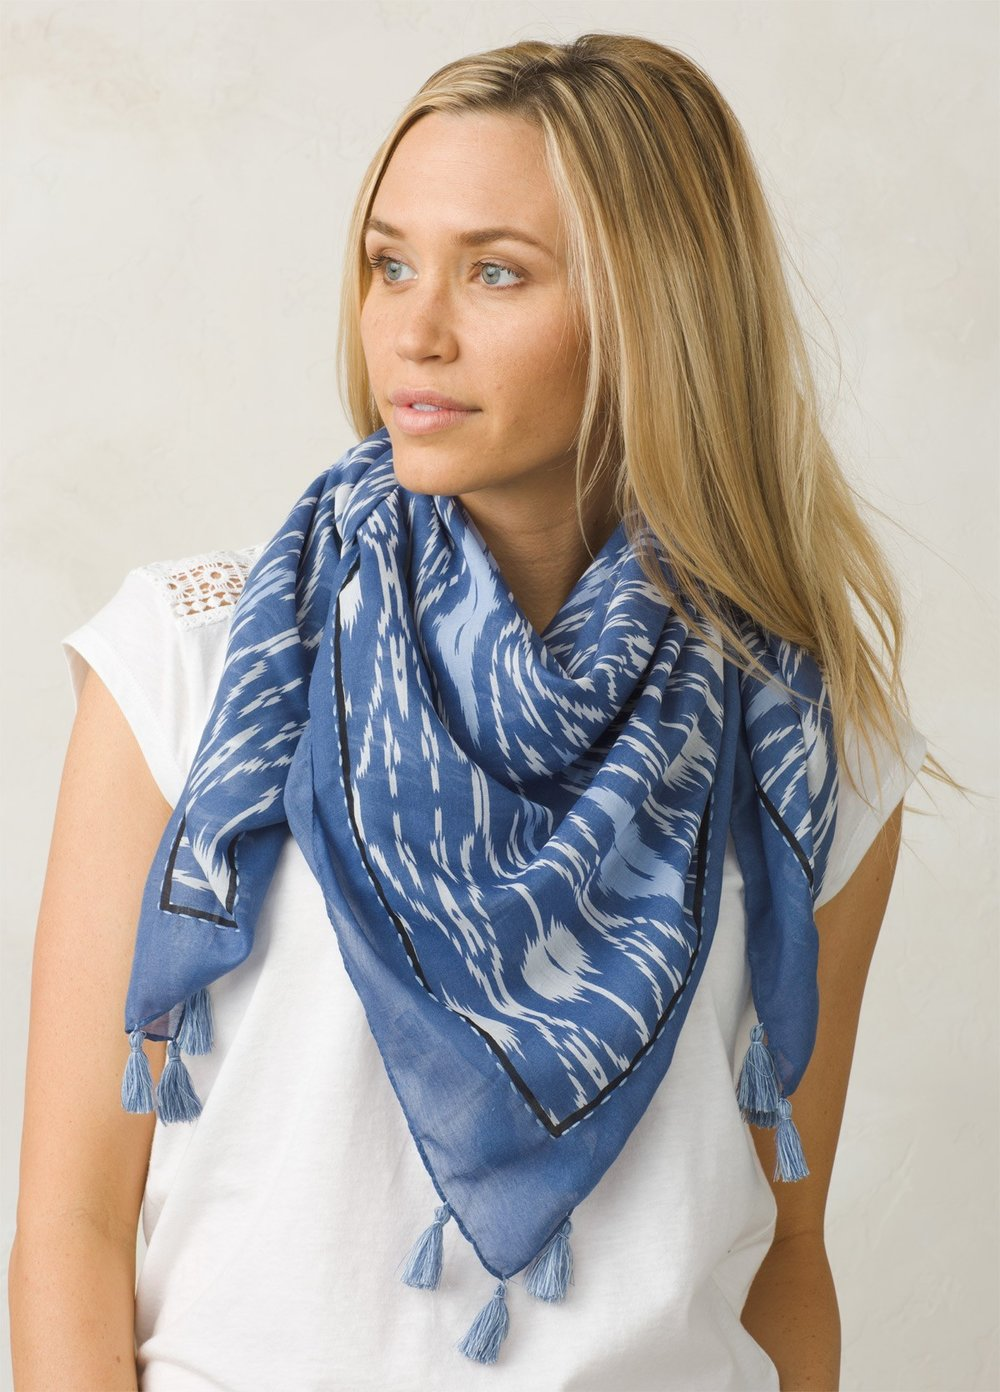 prAna Marilyne Scarf in Sunbleached Blue.